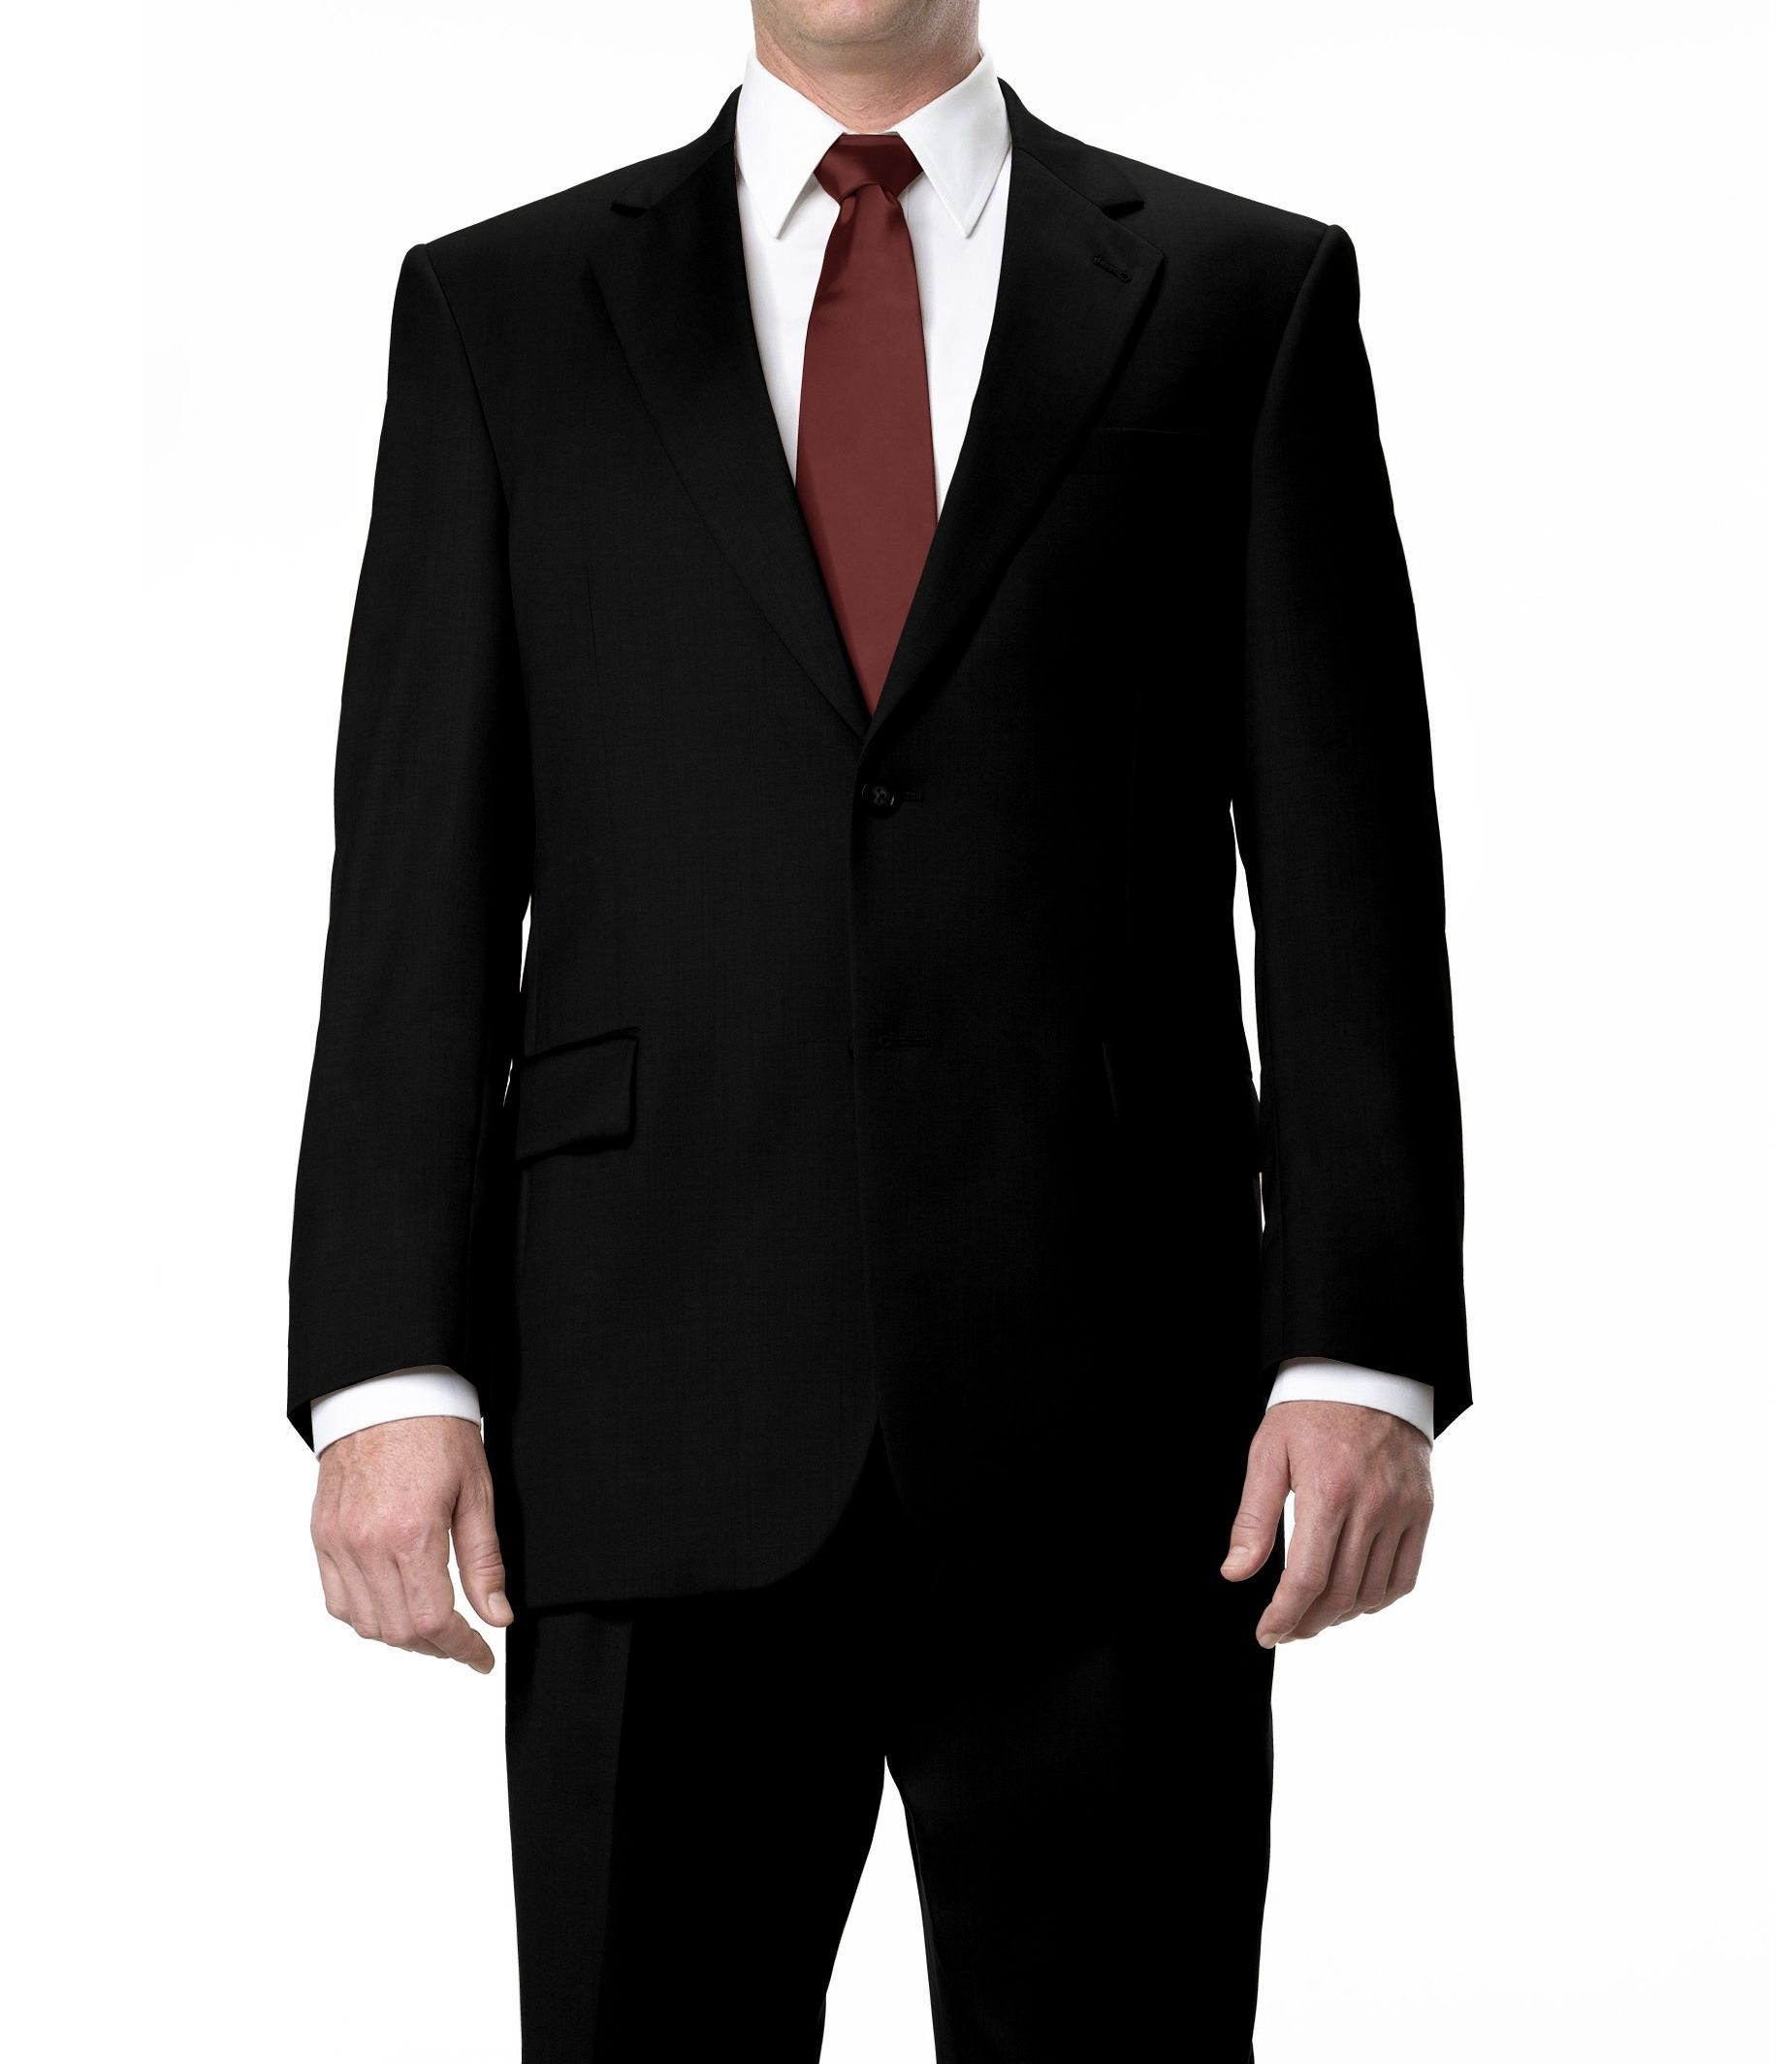 Signature Collection Regal Fit Herringbone Suit CLEARANCE